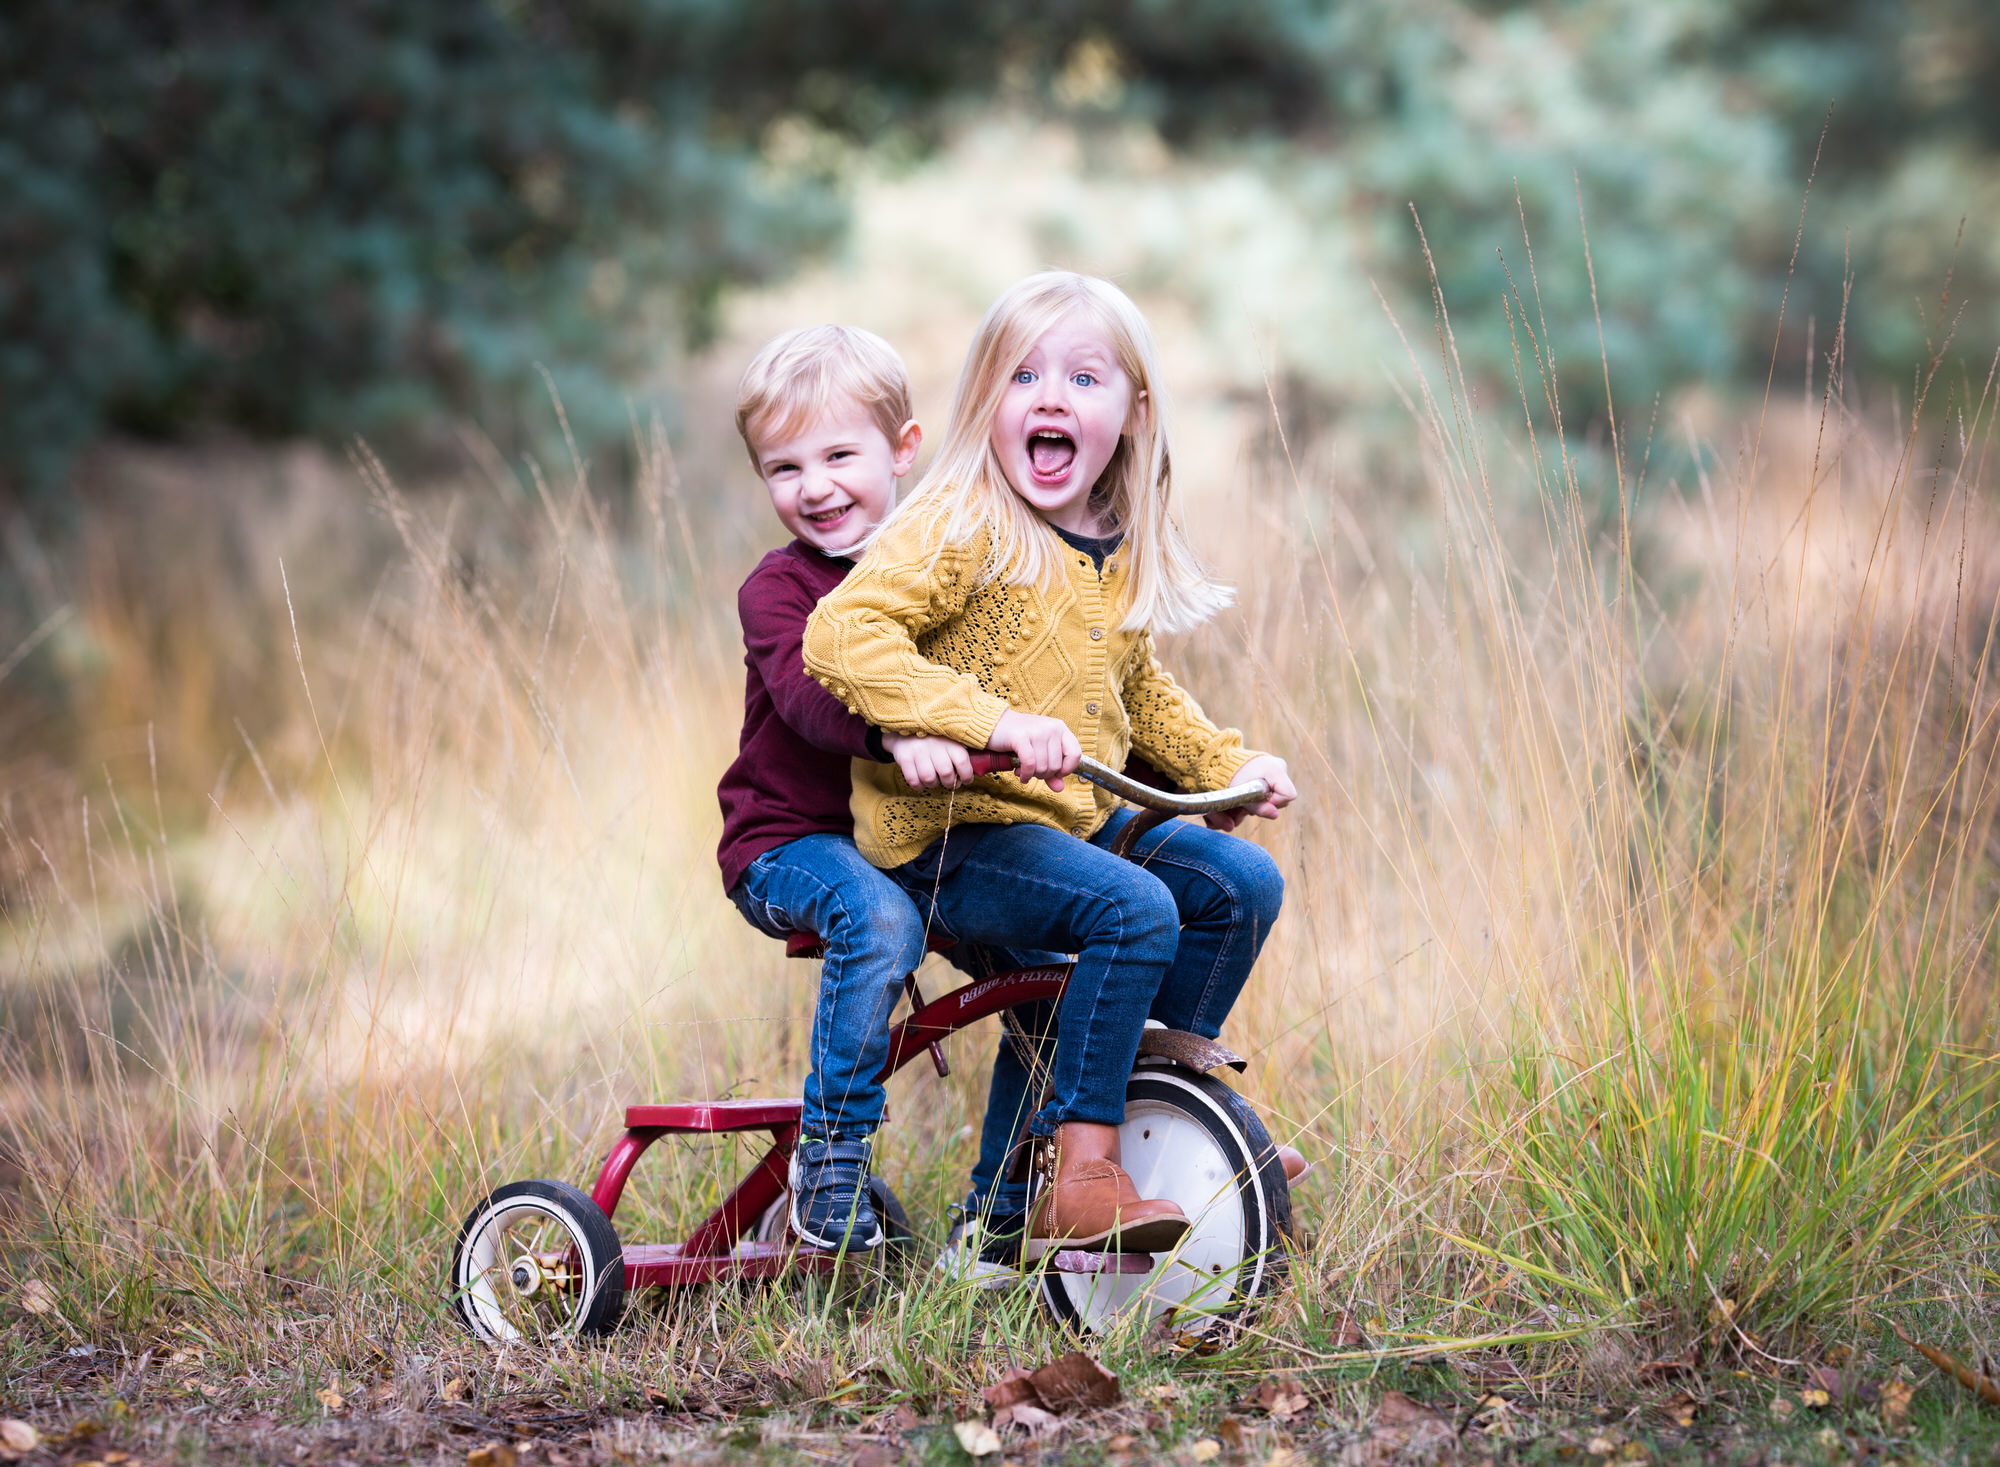 Siblings smiling on a tricycle during a photoshoot in Benson